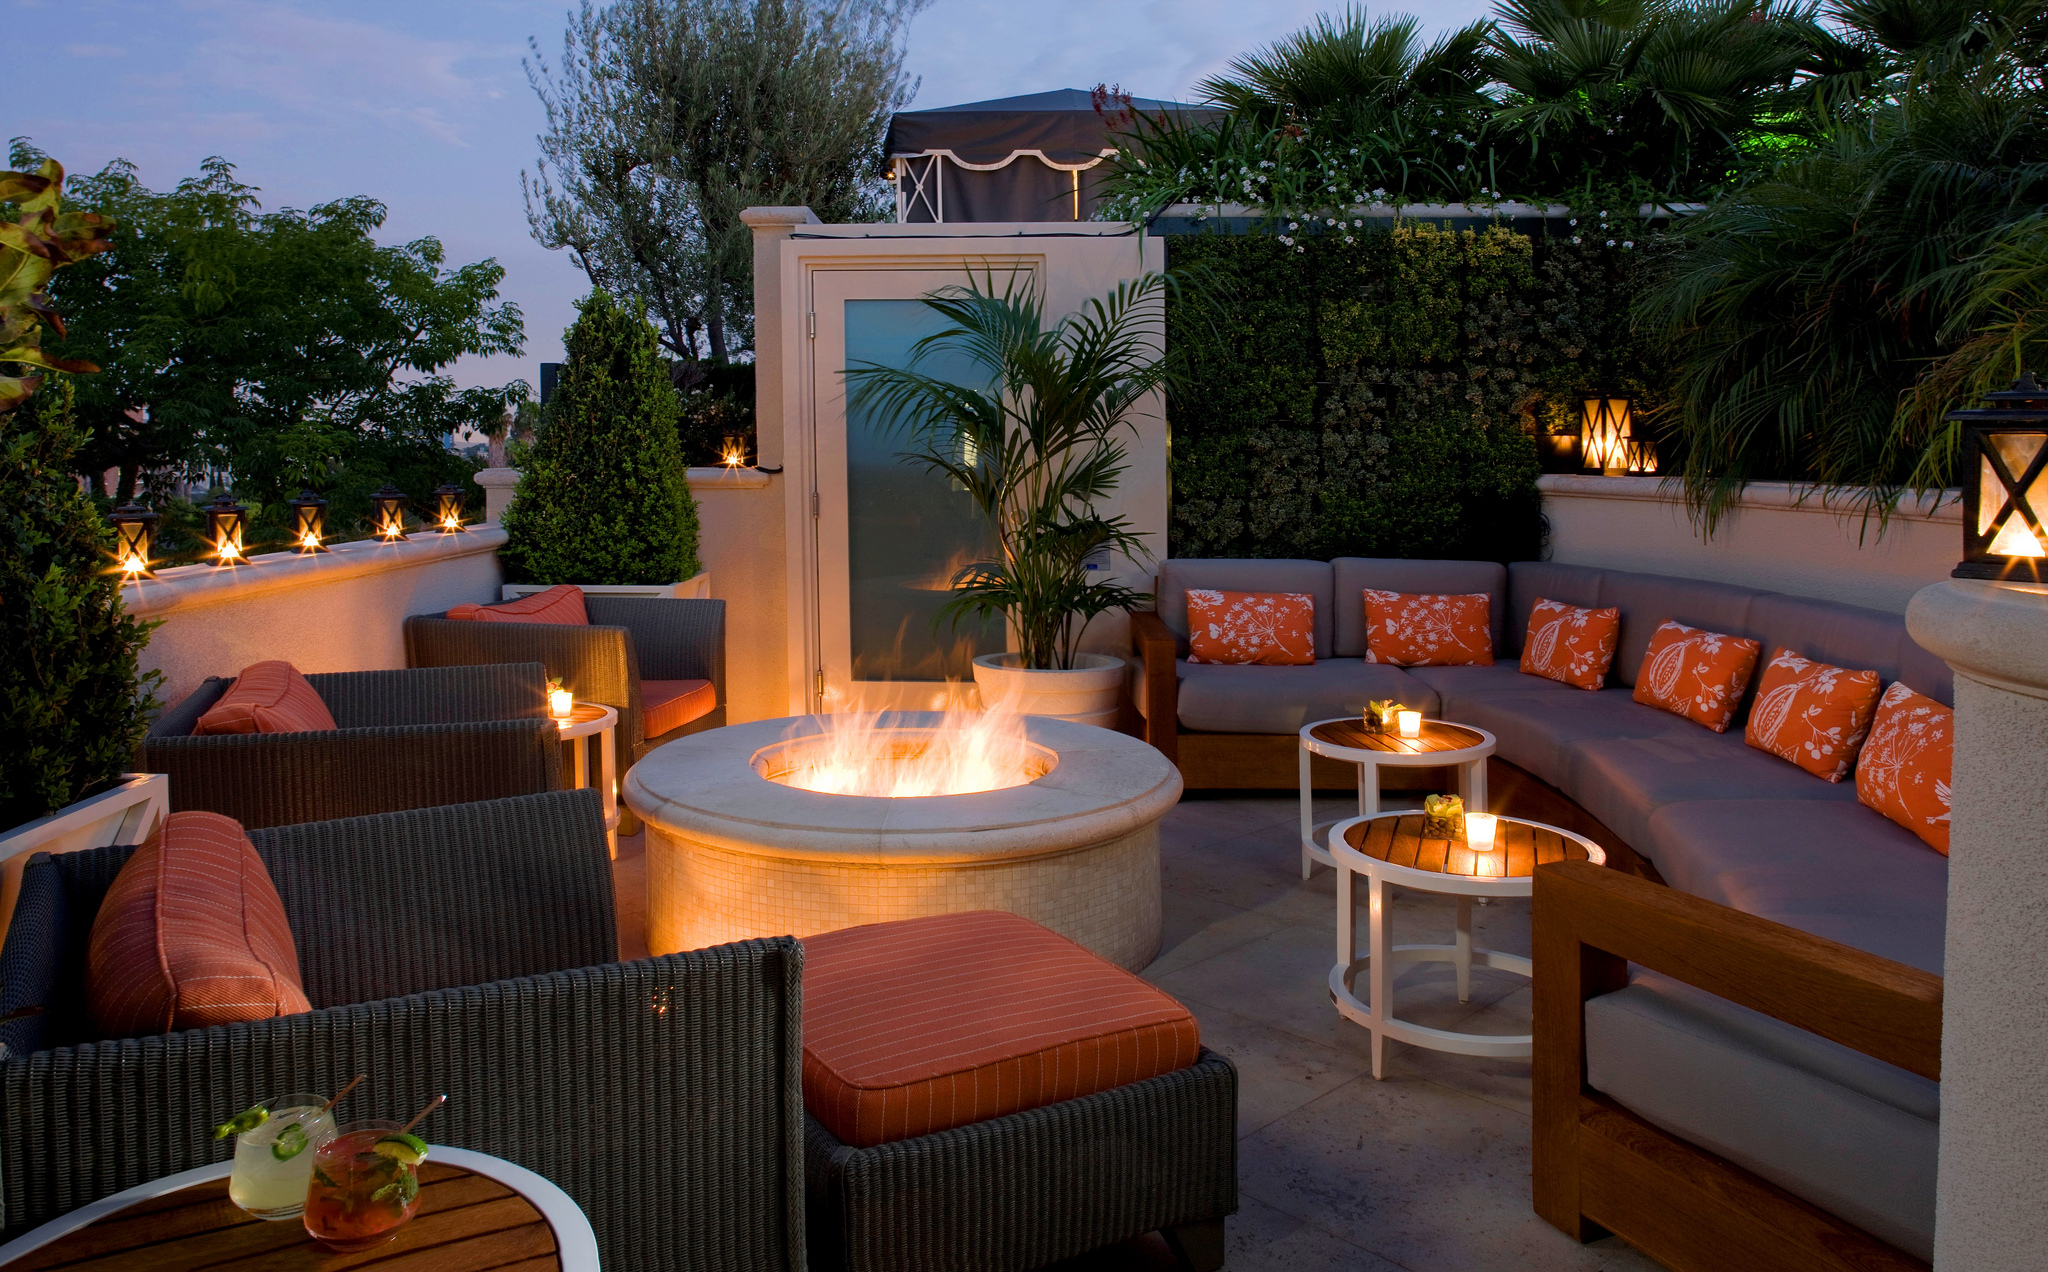 The Peninsula Beverly Hills Fire Pit